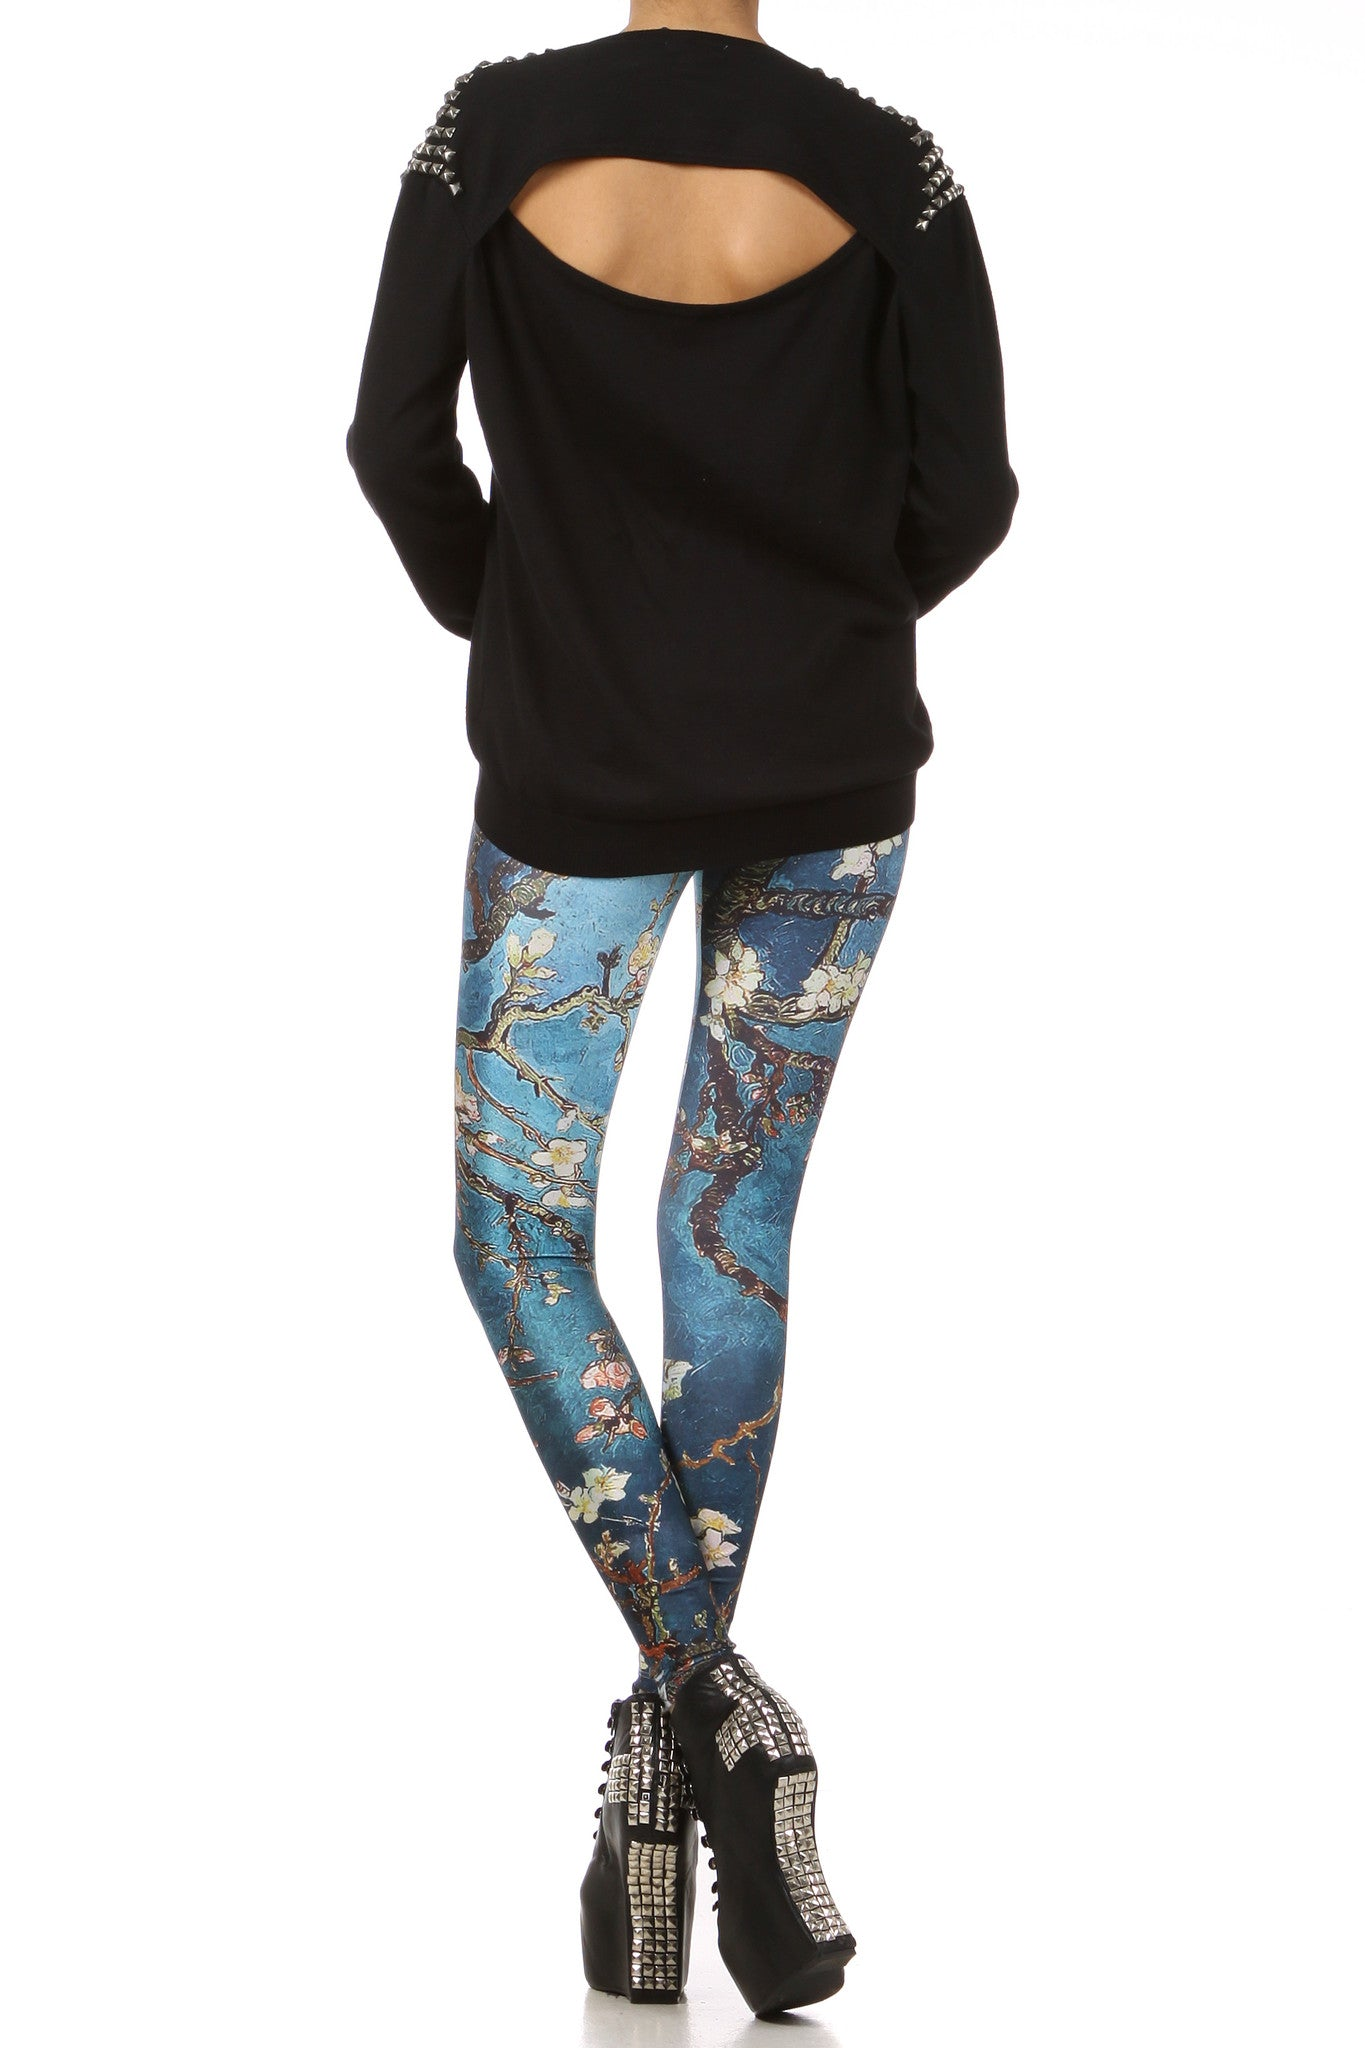 Almond Blossom Leggings - POPRAGEOUS  - 4